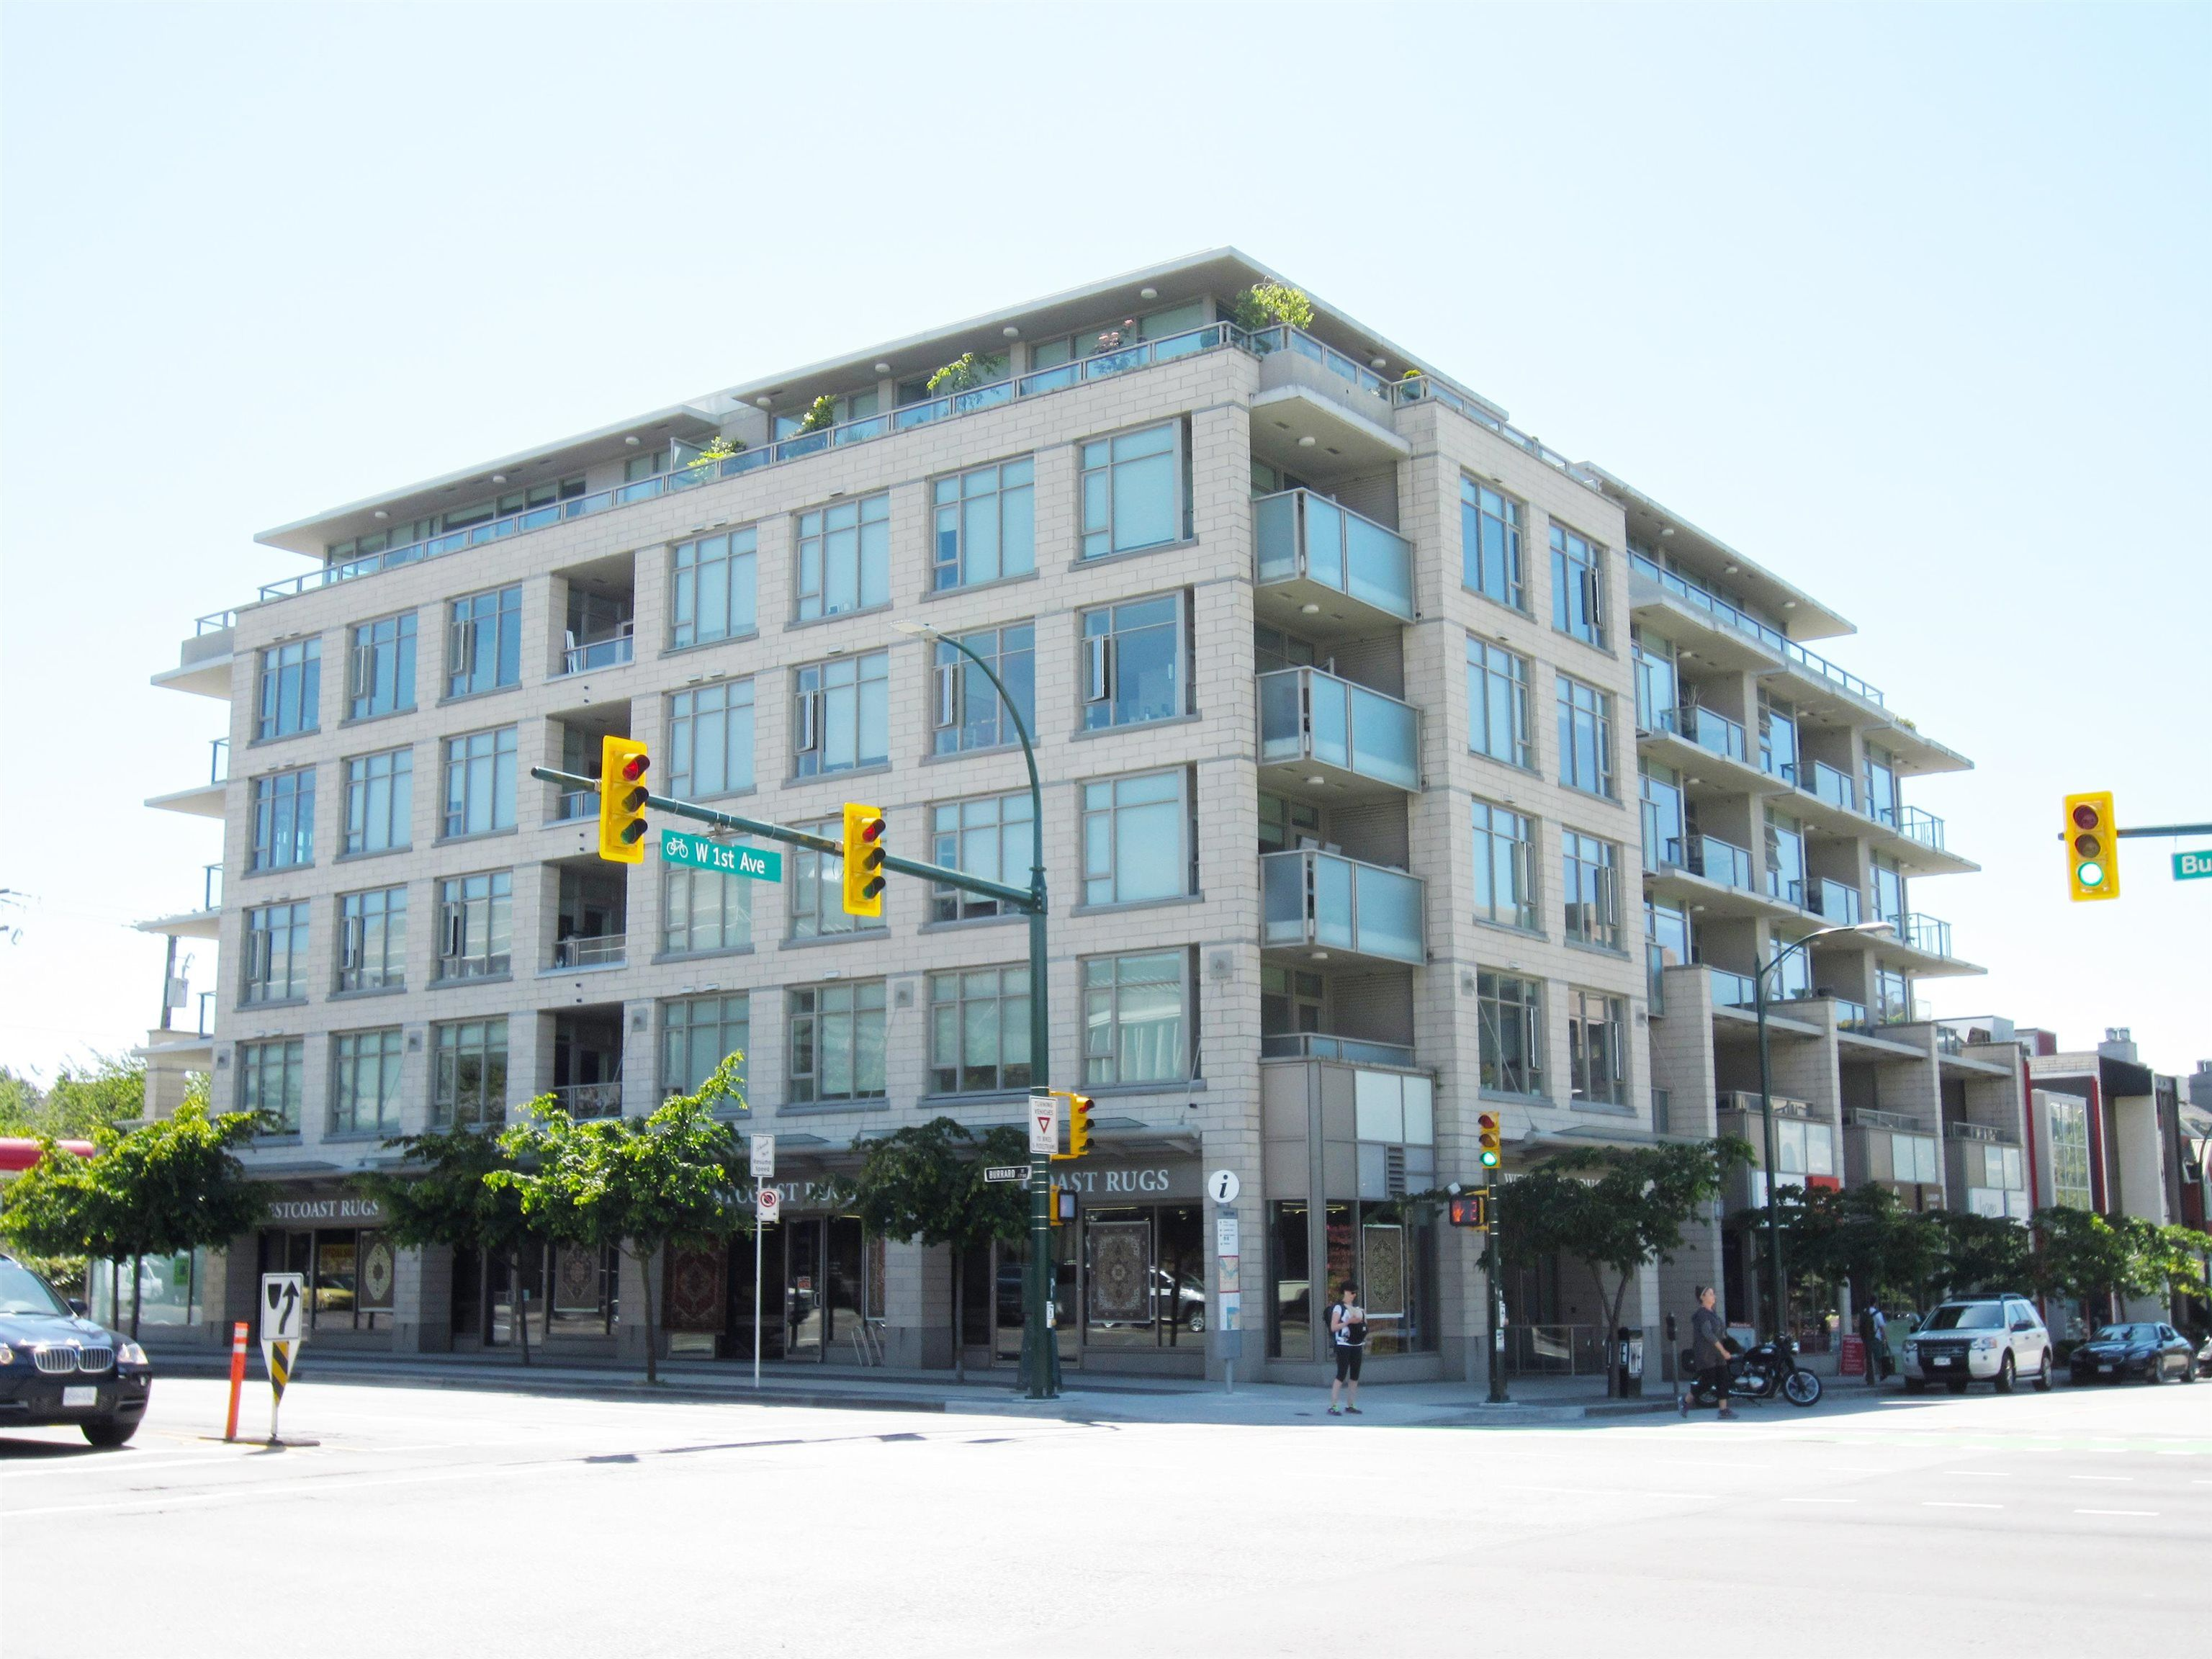 Main Photo: 1705 BURRARD Street in Vancouver: Kitsilano Retail for sale (Vancouver West)  : MLS®# C8040136